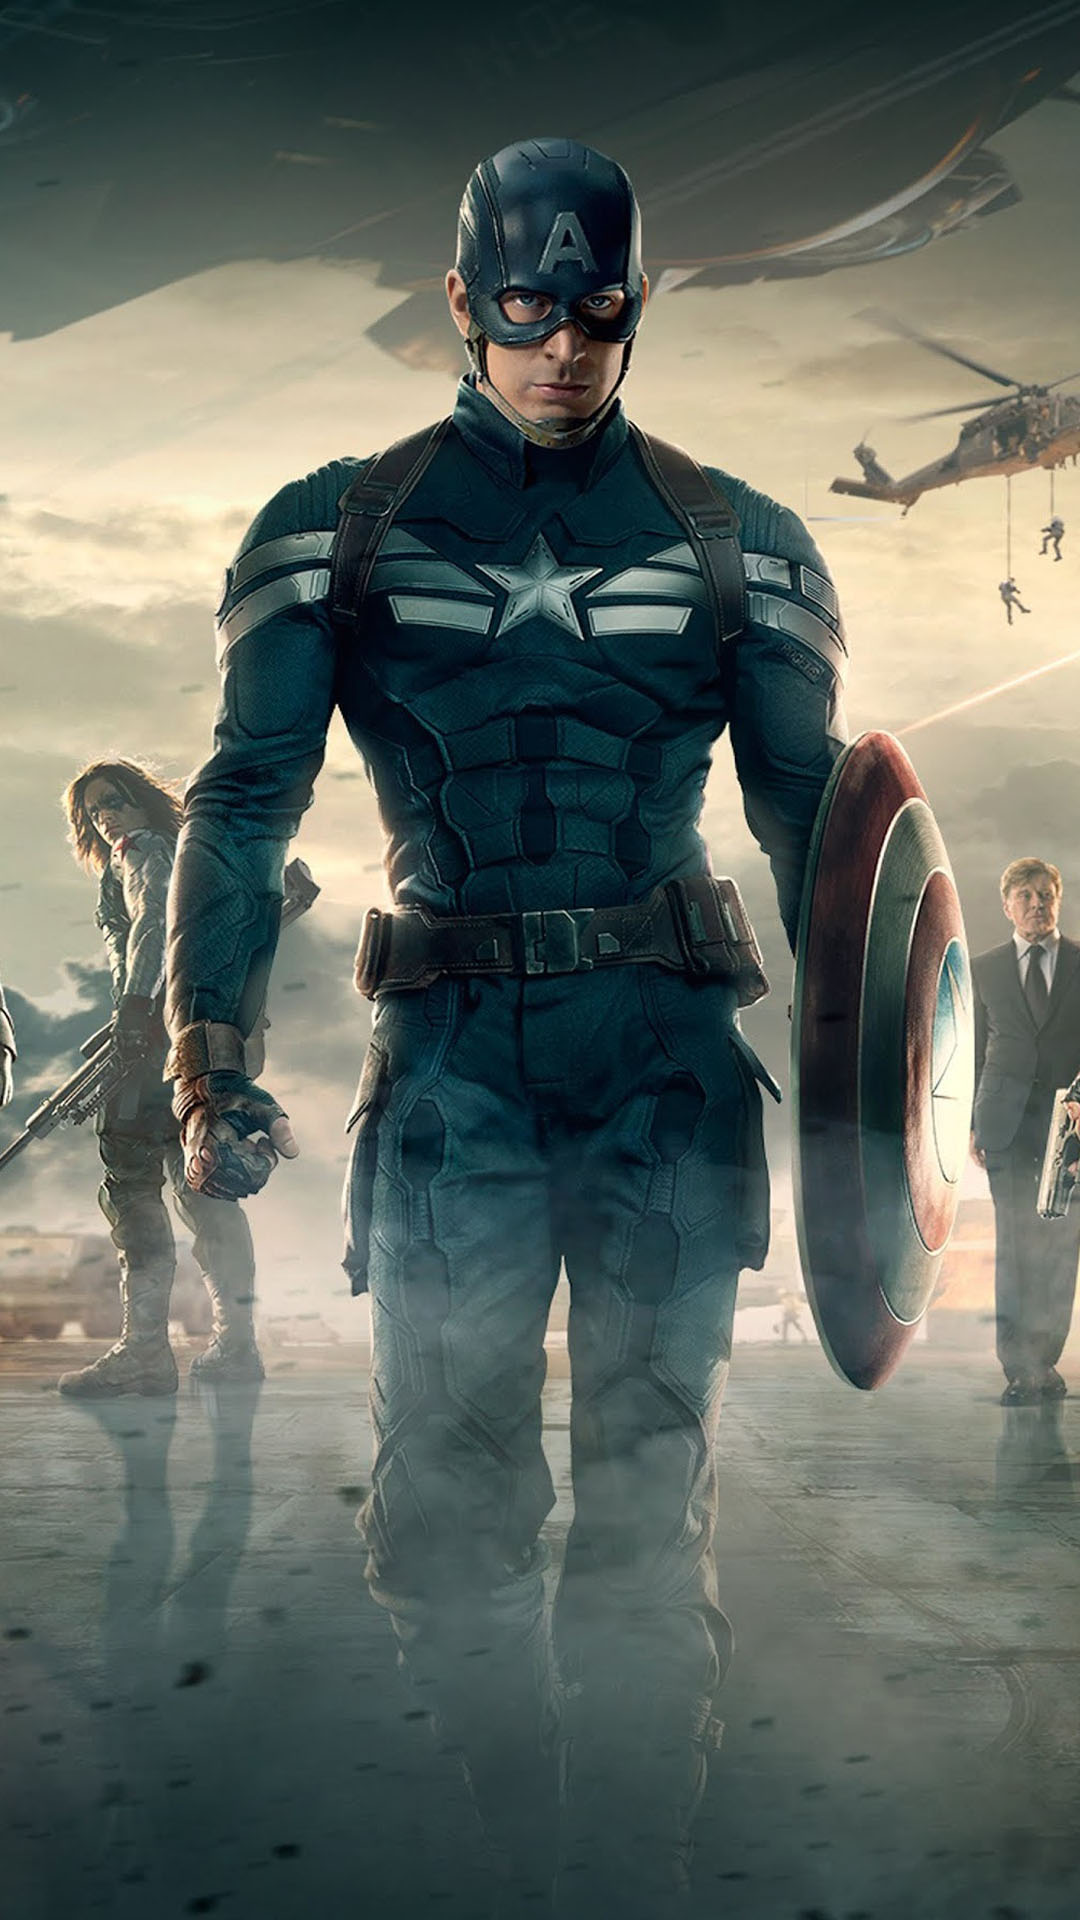 Captain America 2 The Winter Soldier